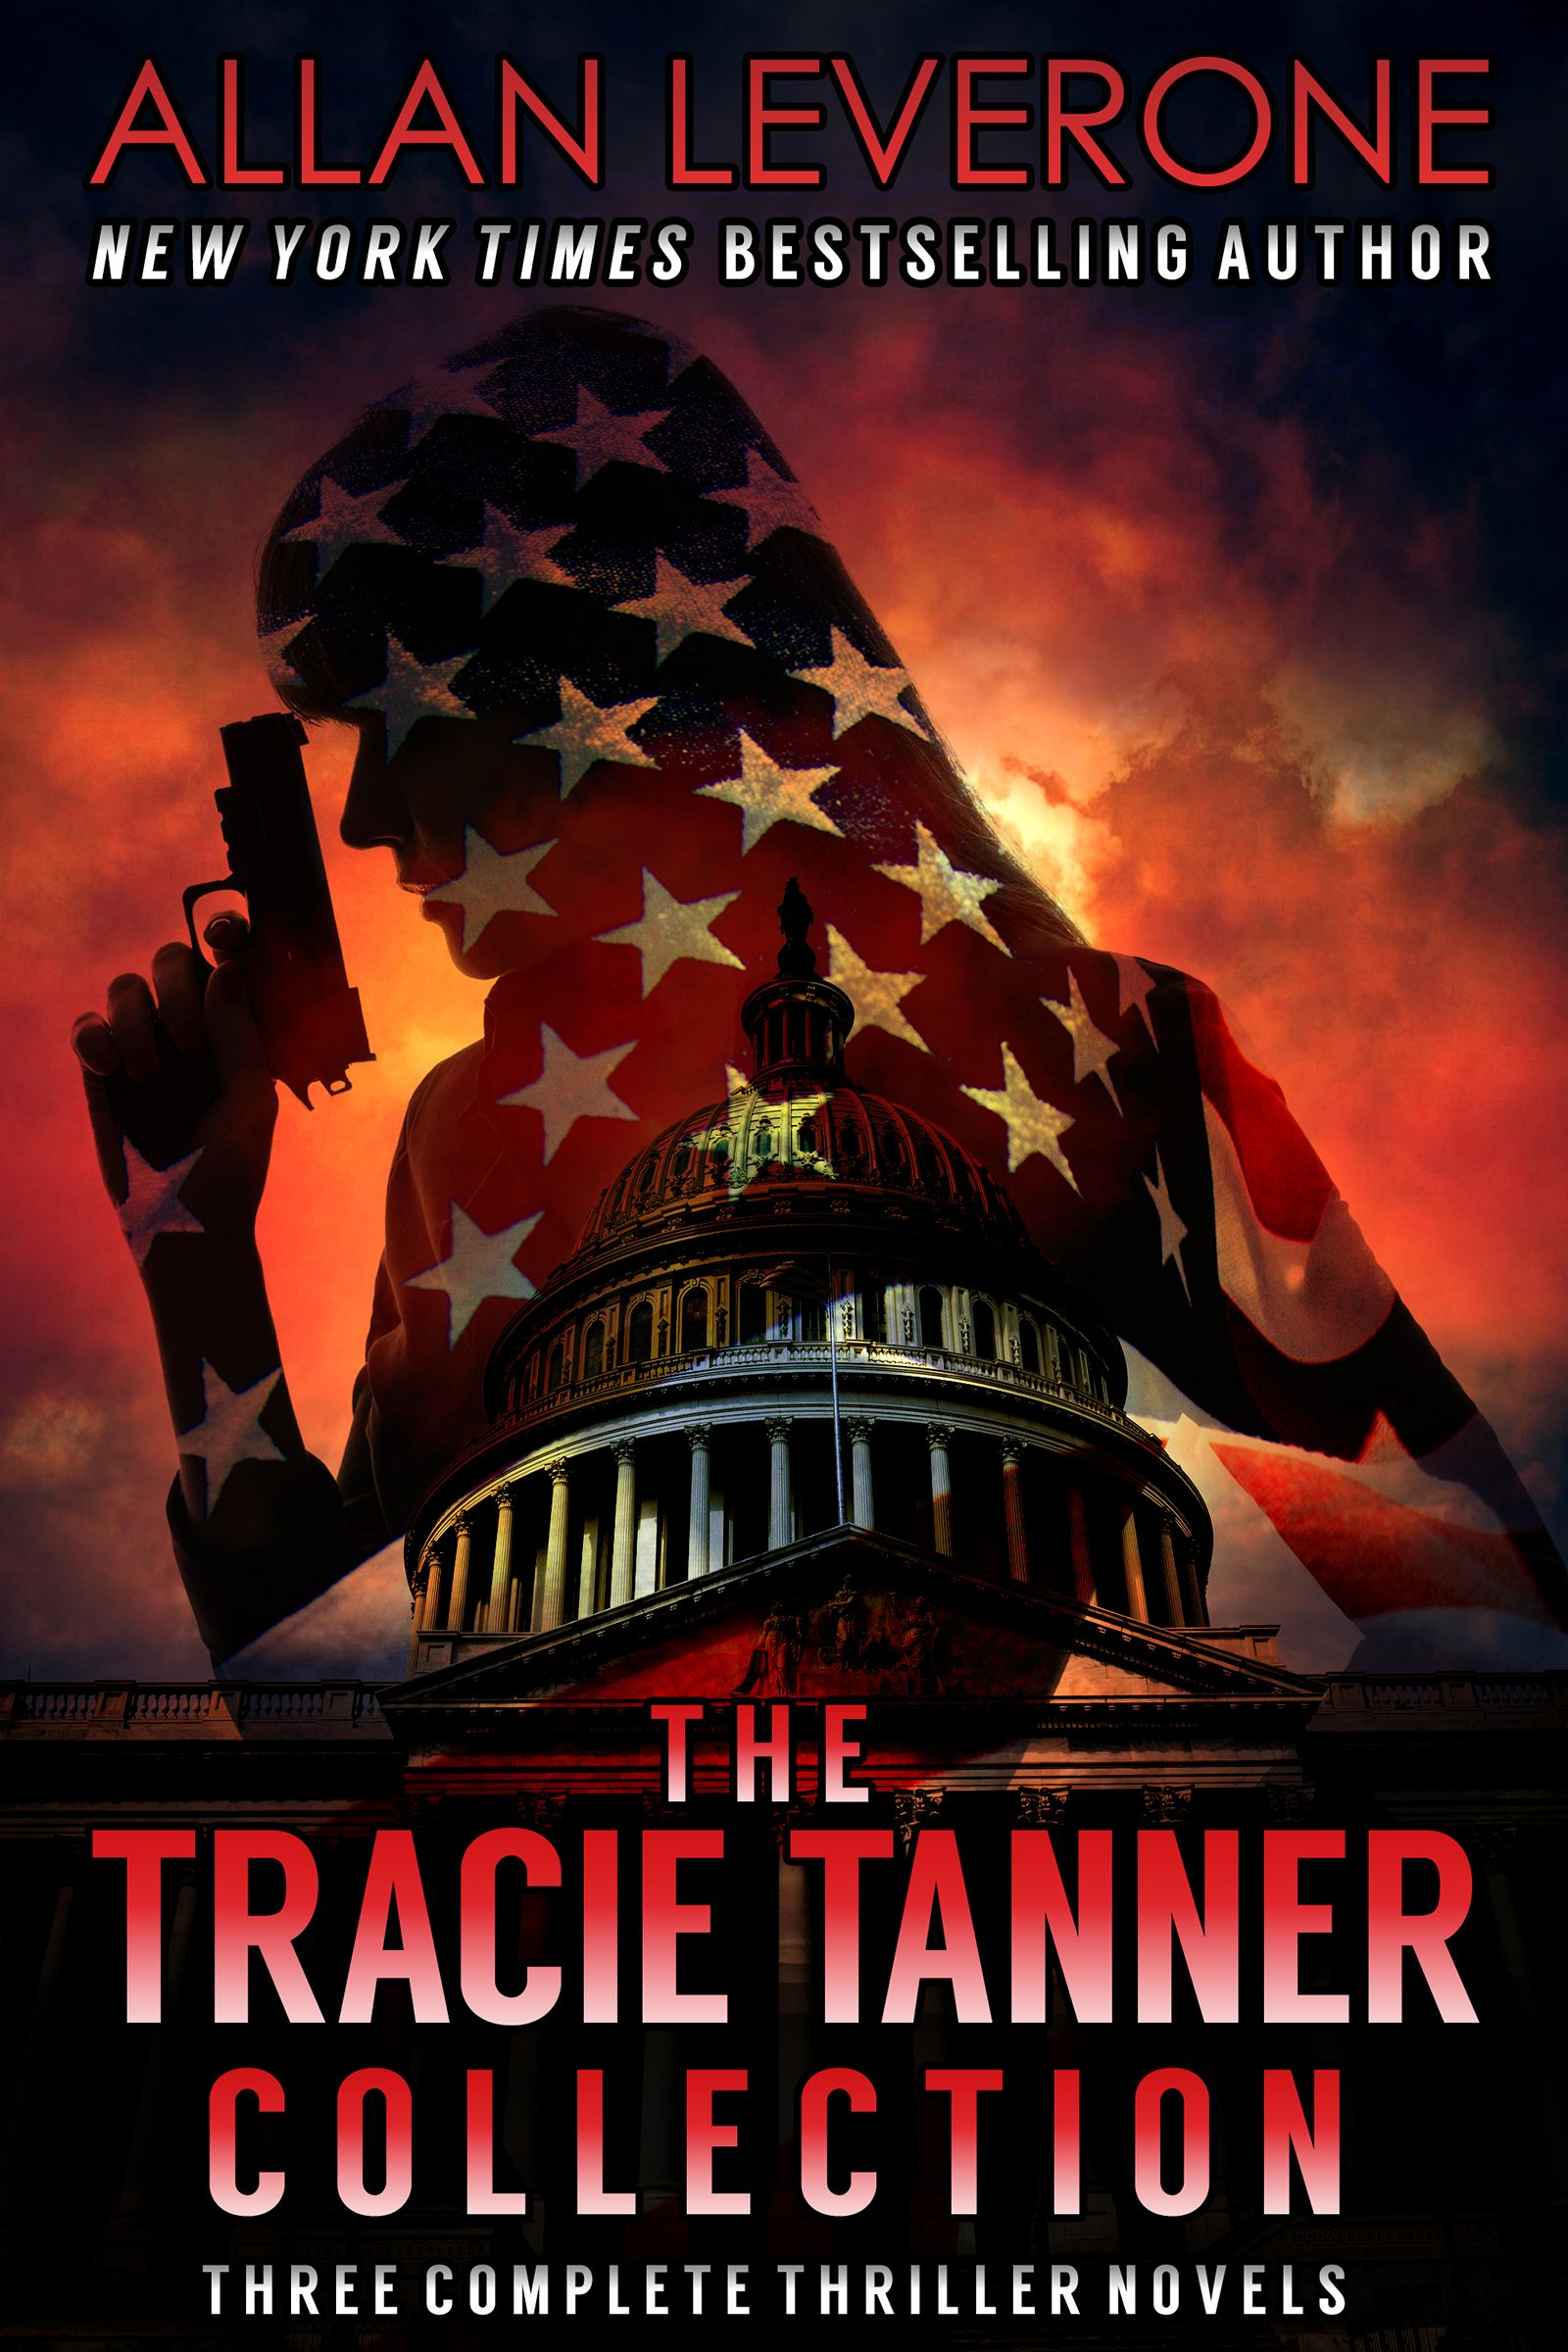 Ebook Deals On The Tracie Tanner Collection By Allan Leverone, Free And  Discounted Ebook Deals For The Tracie Tanner Collection And Other Great  Books